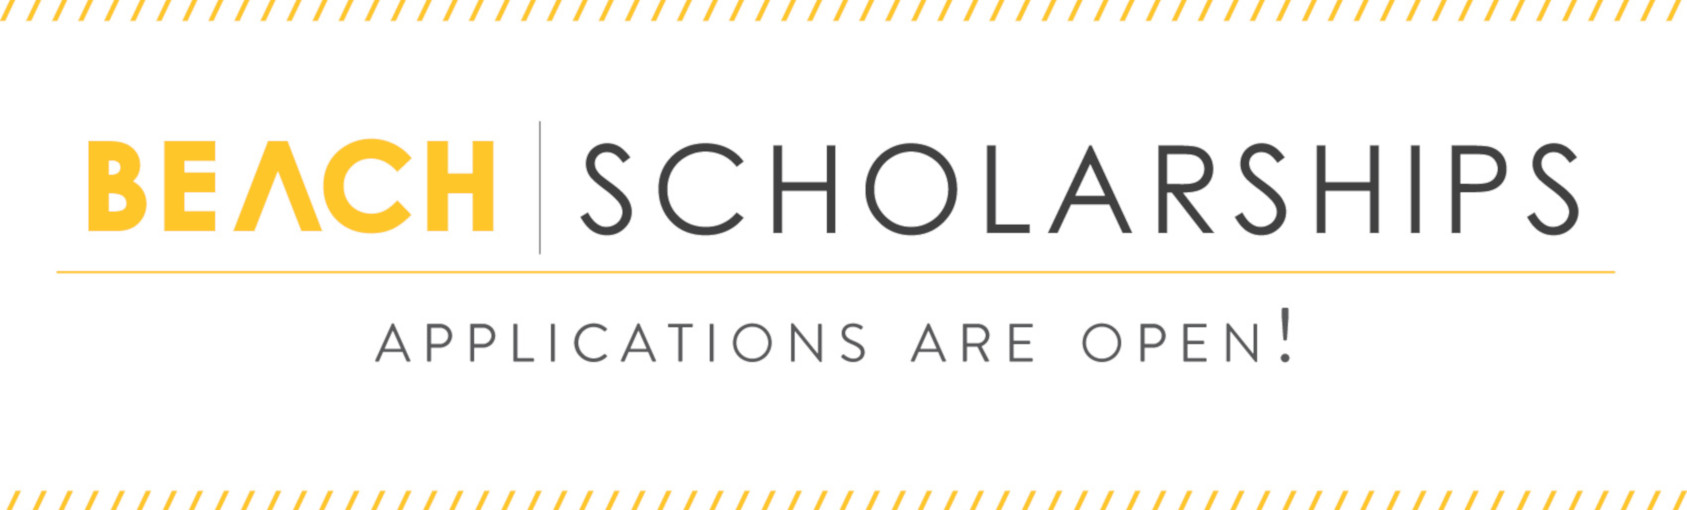 Easily Apply for Beach Scholarships Bannner